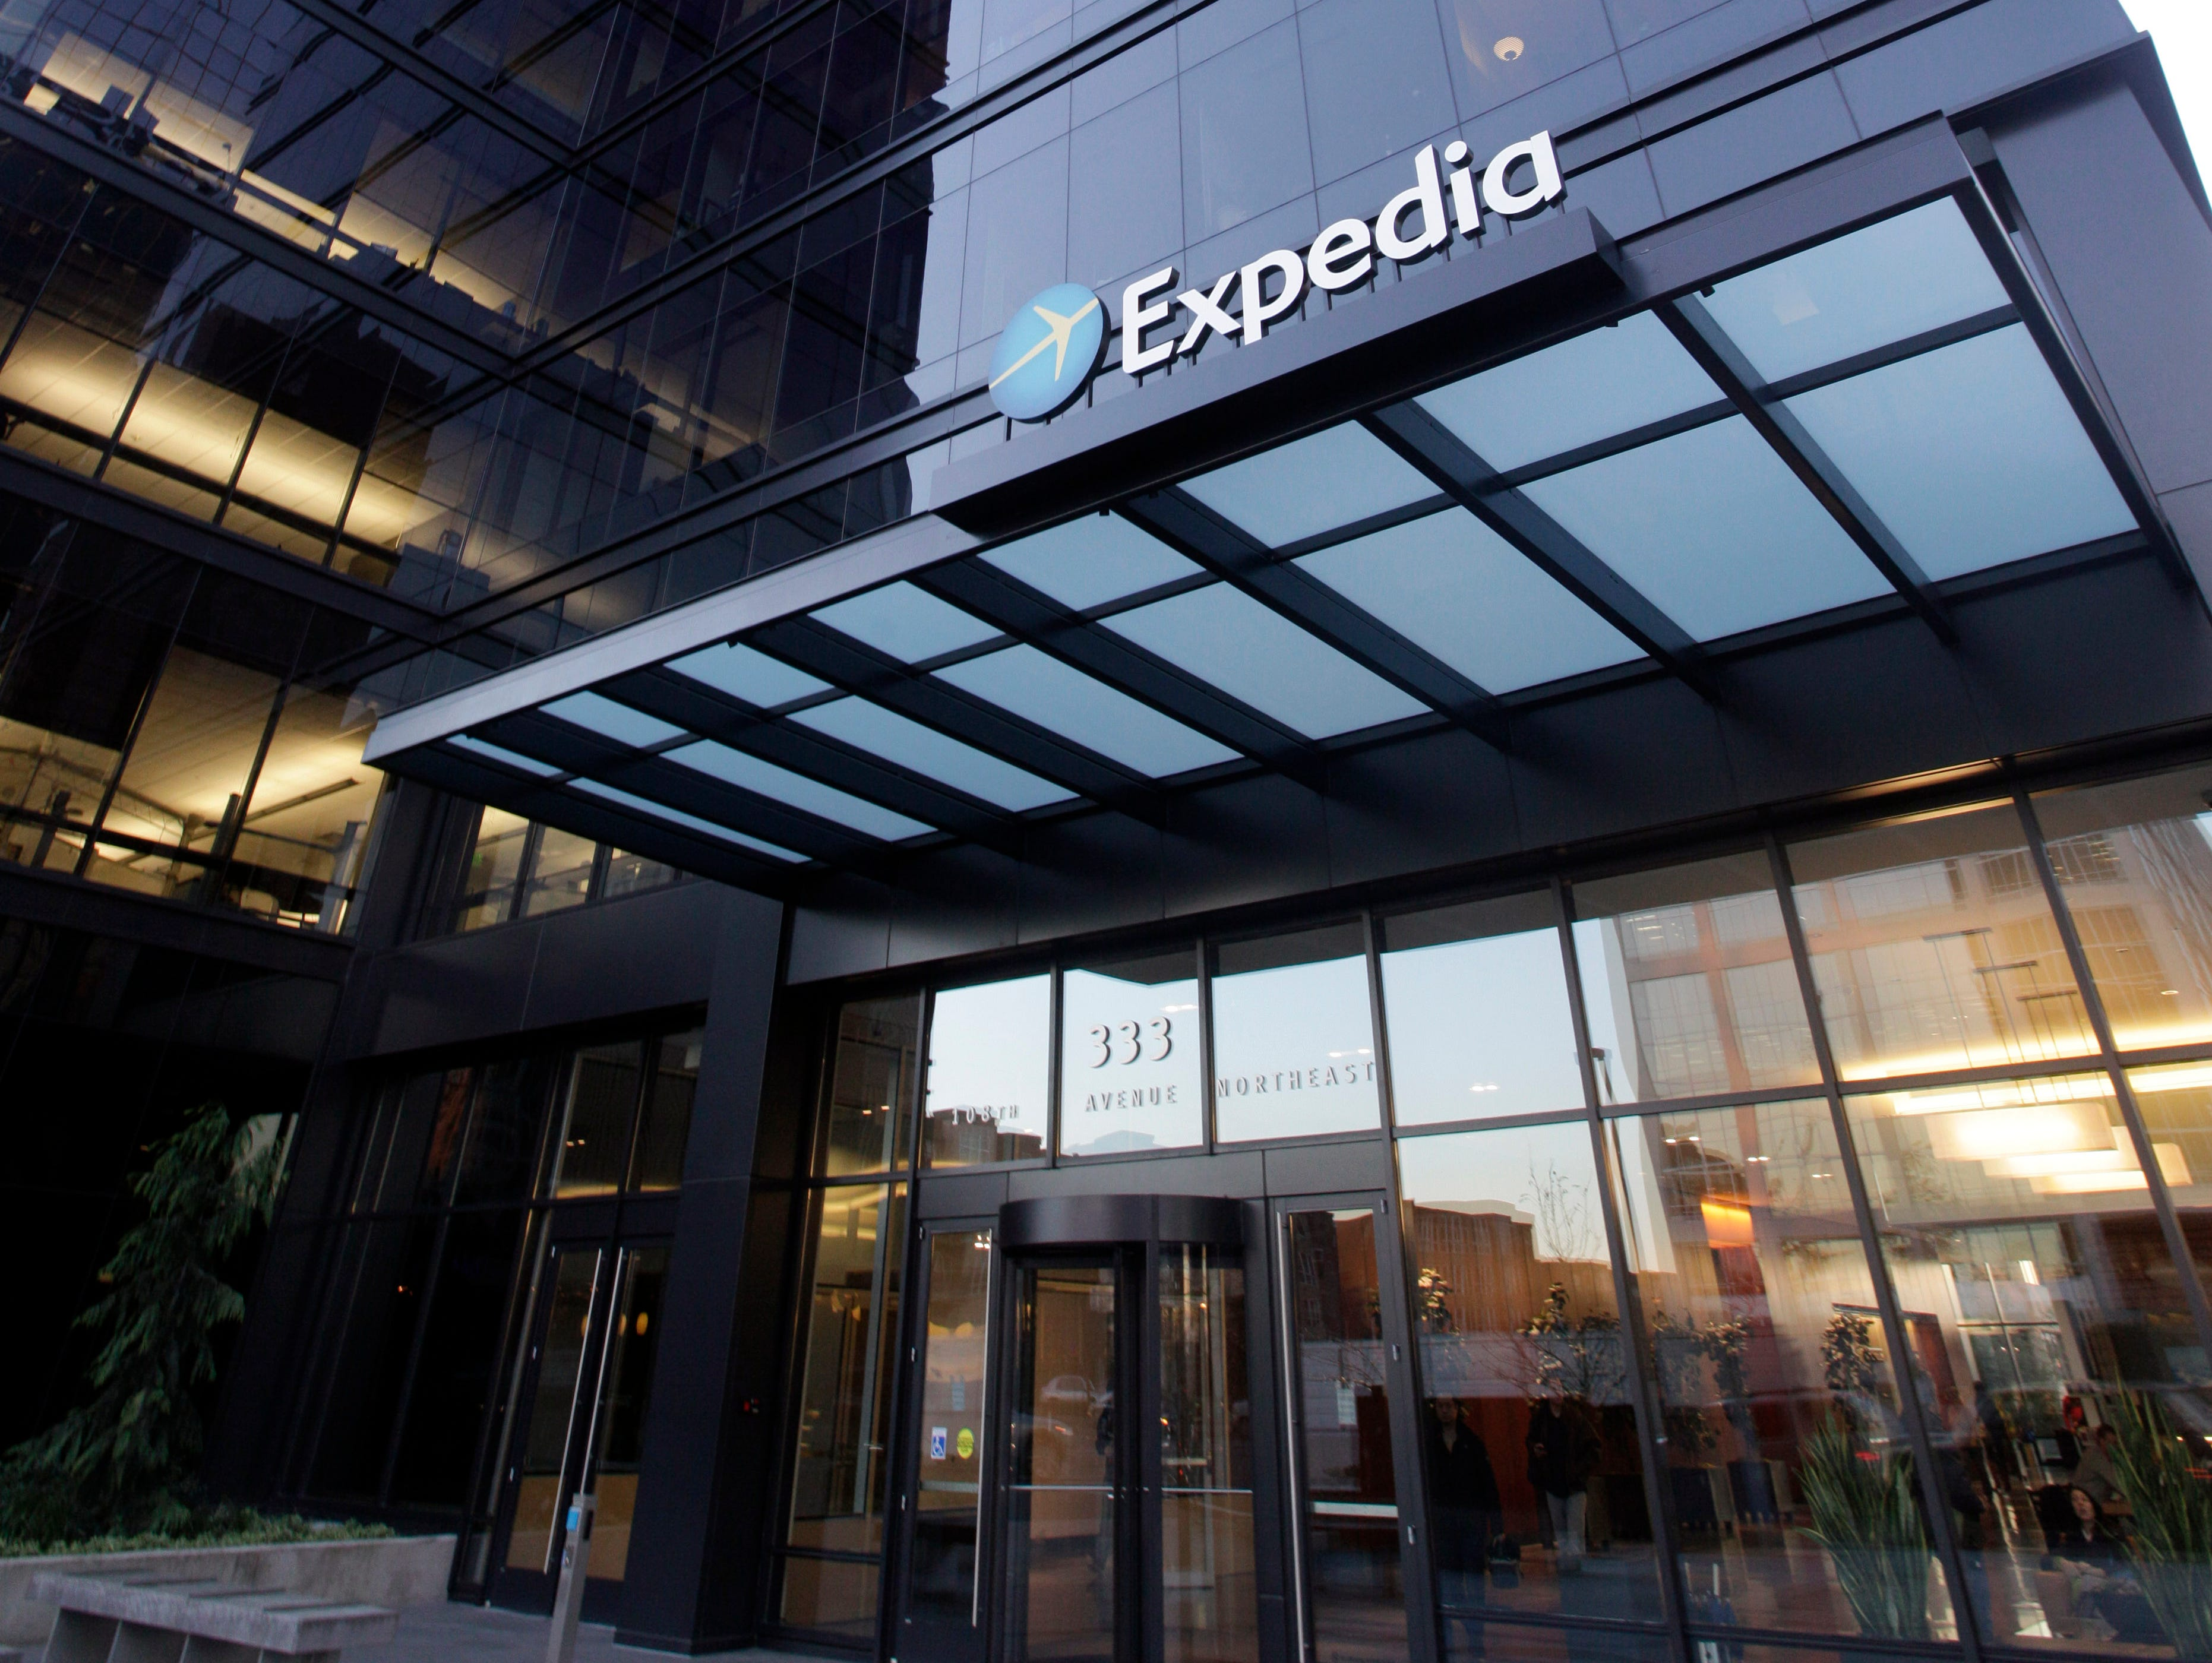 Expedia offices in Bellevue, Wash.